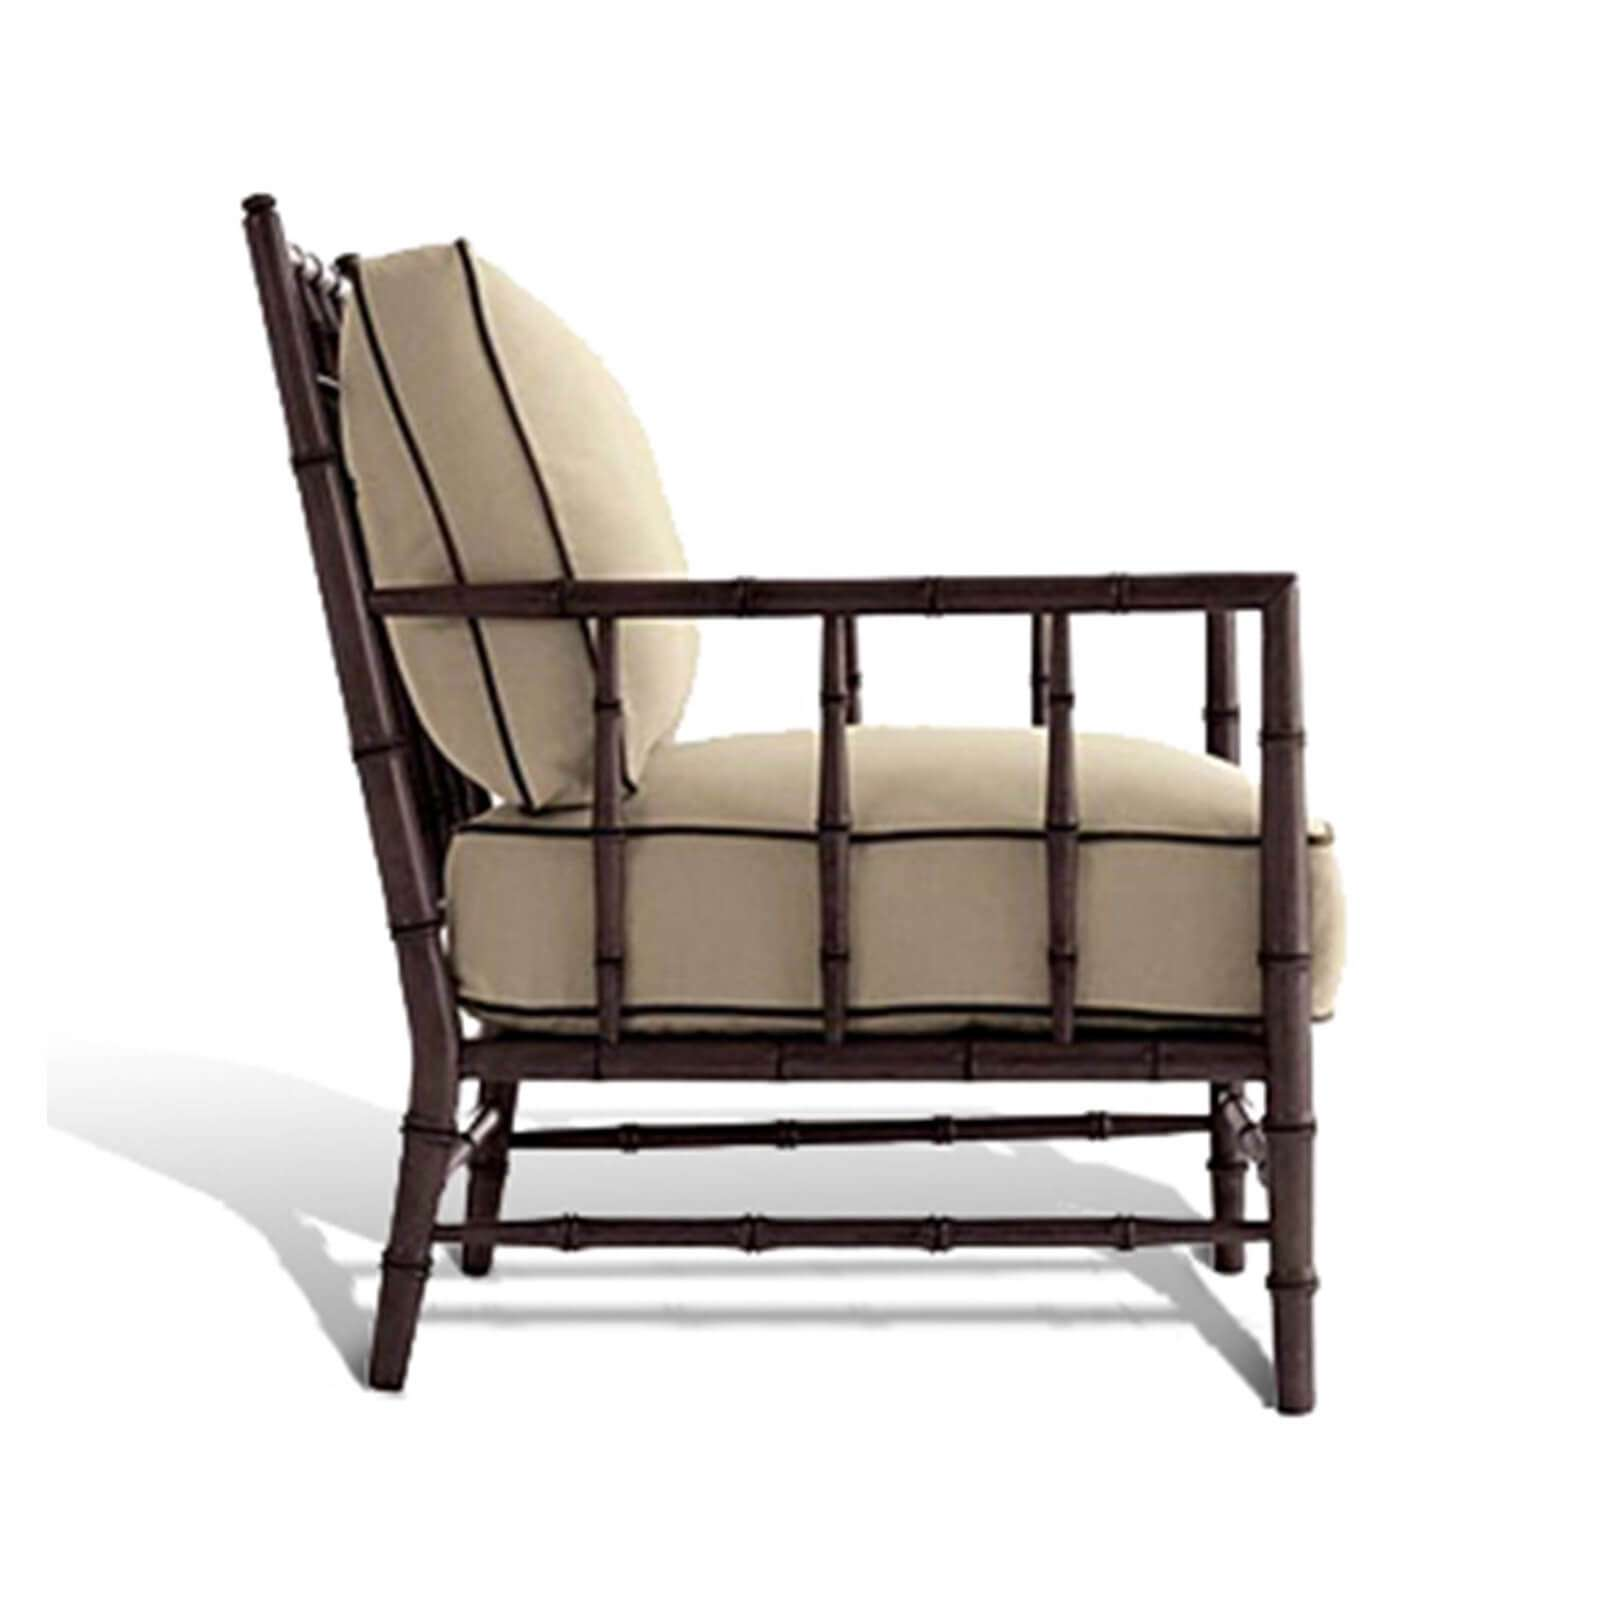 CAPE COLONY ARM CHAIR 4 - STUART MEMBERY HOME COLLECTION